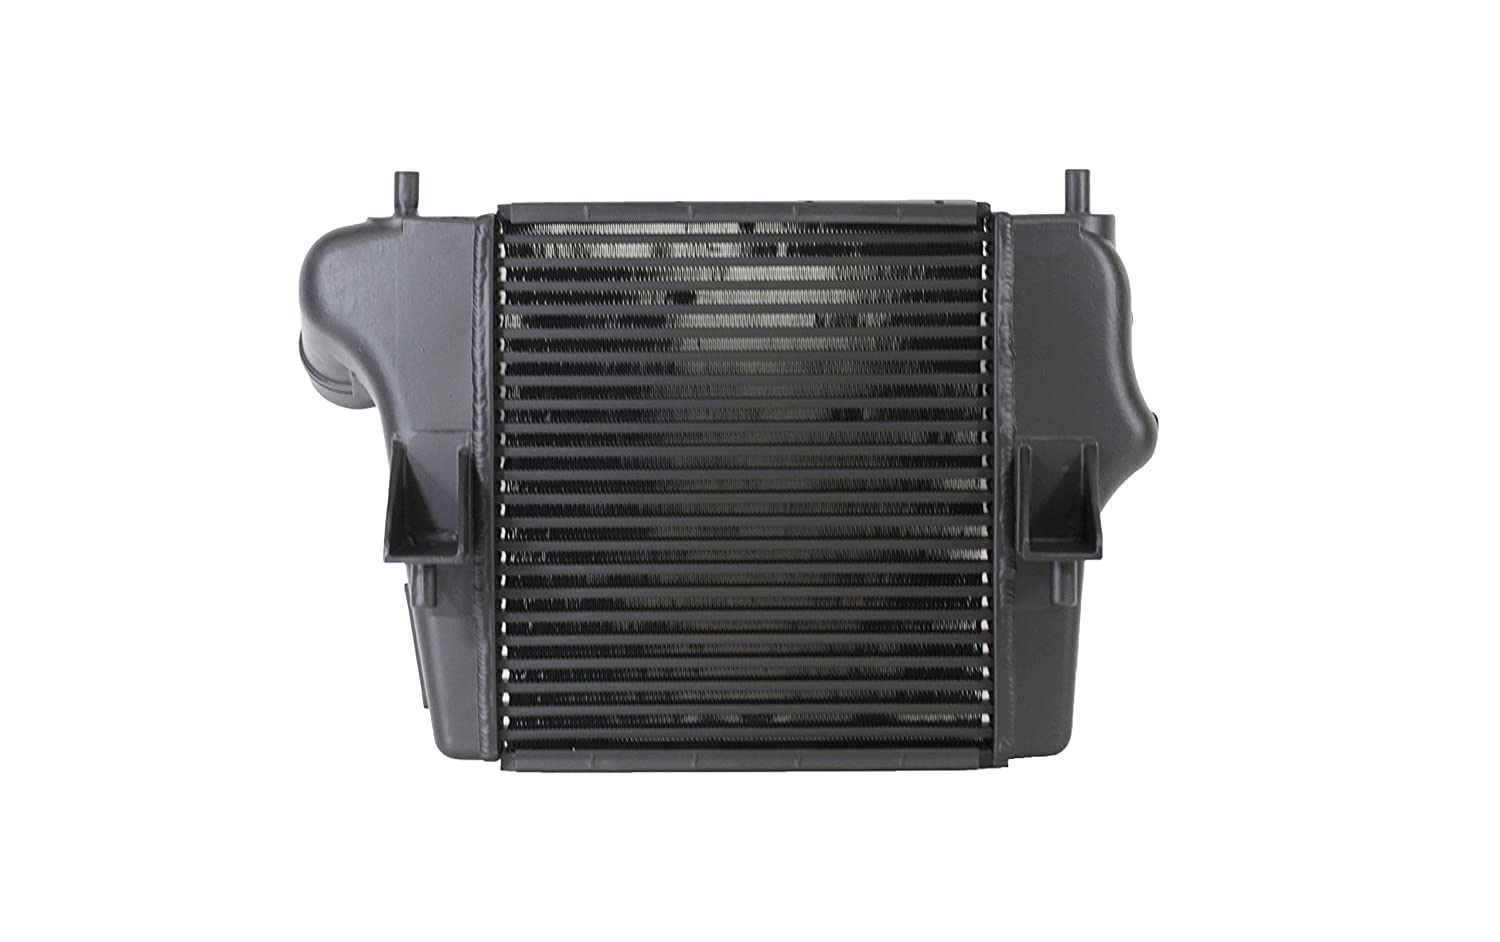 Intercooler Kit Cooling Direct For//Fit FO3012105 11-12 Ford F-150 3.5L Ecoboost Intercooler